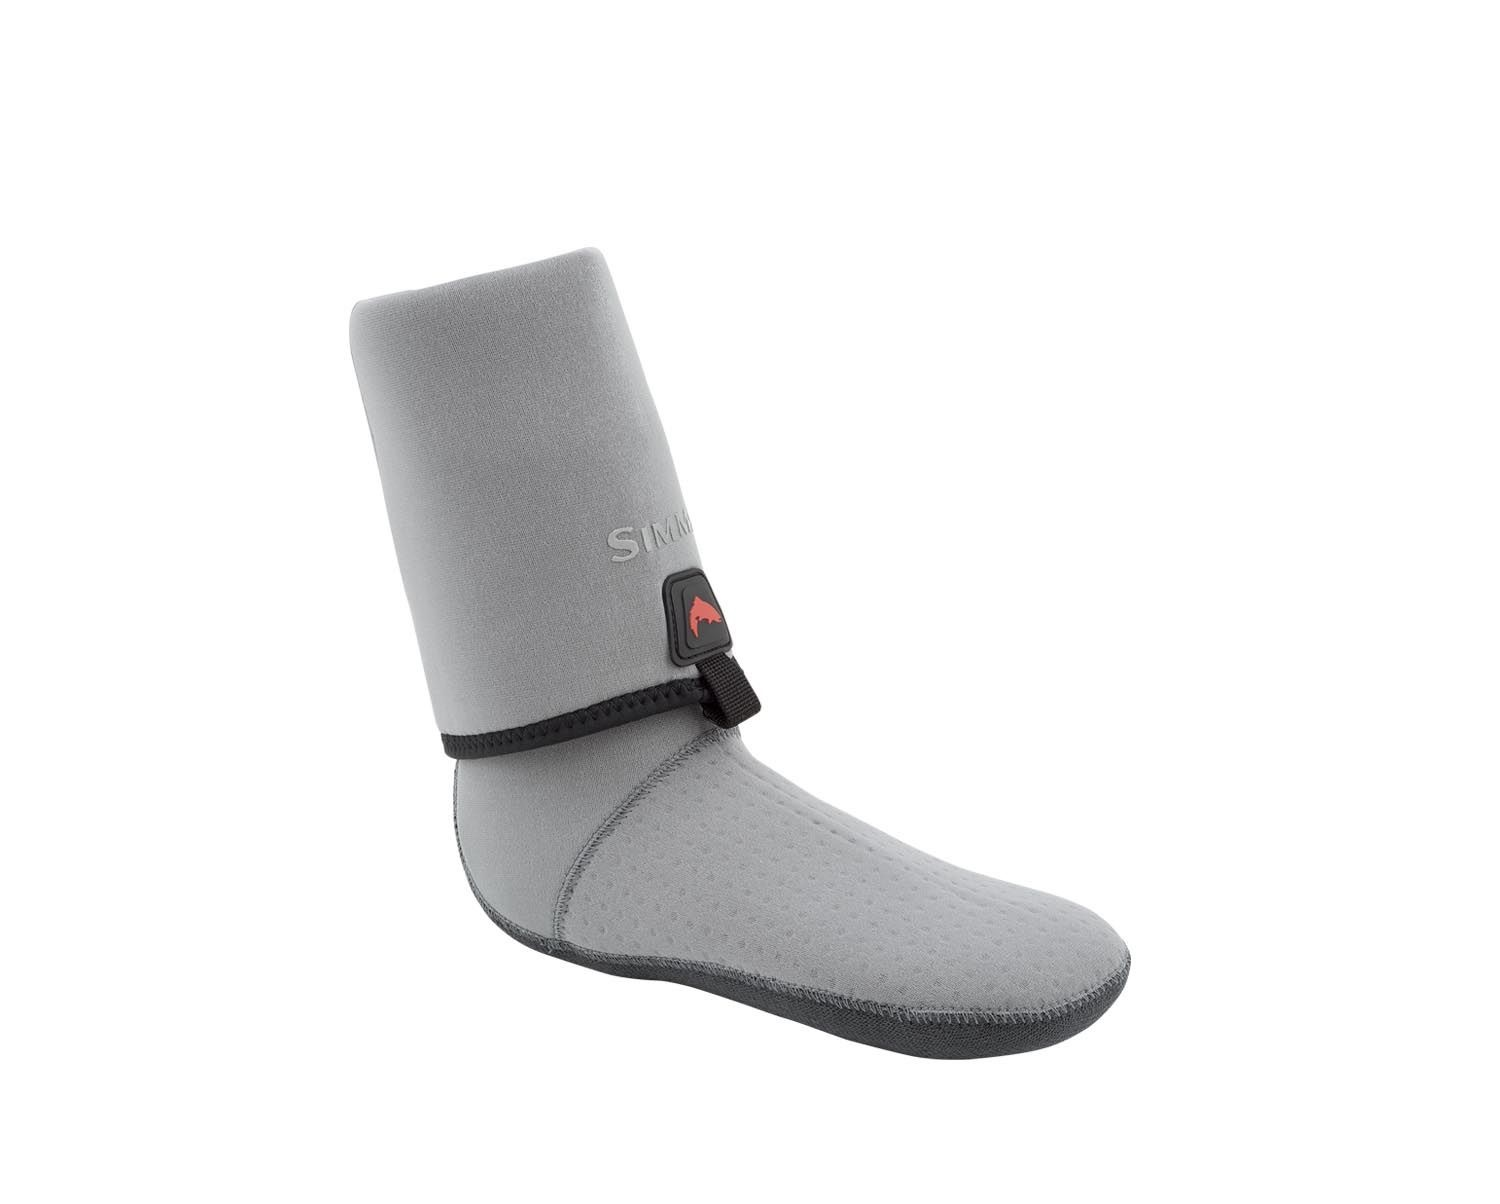 Simms Fishing Guide Guard Socks